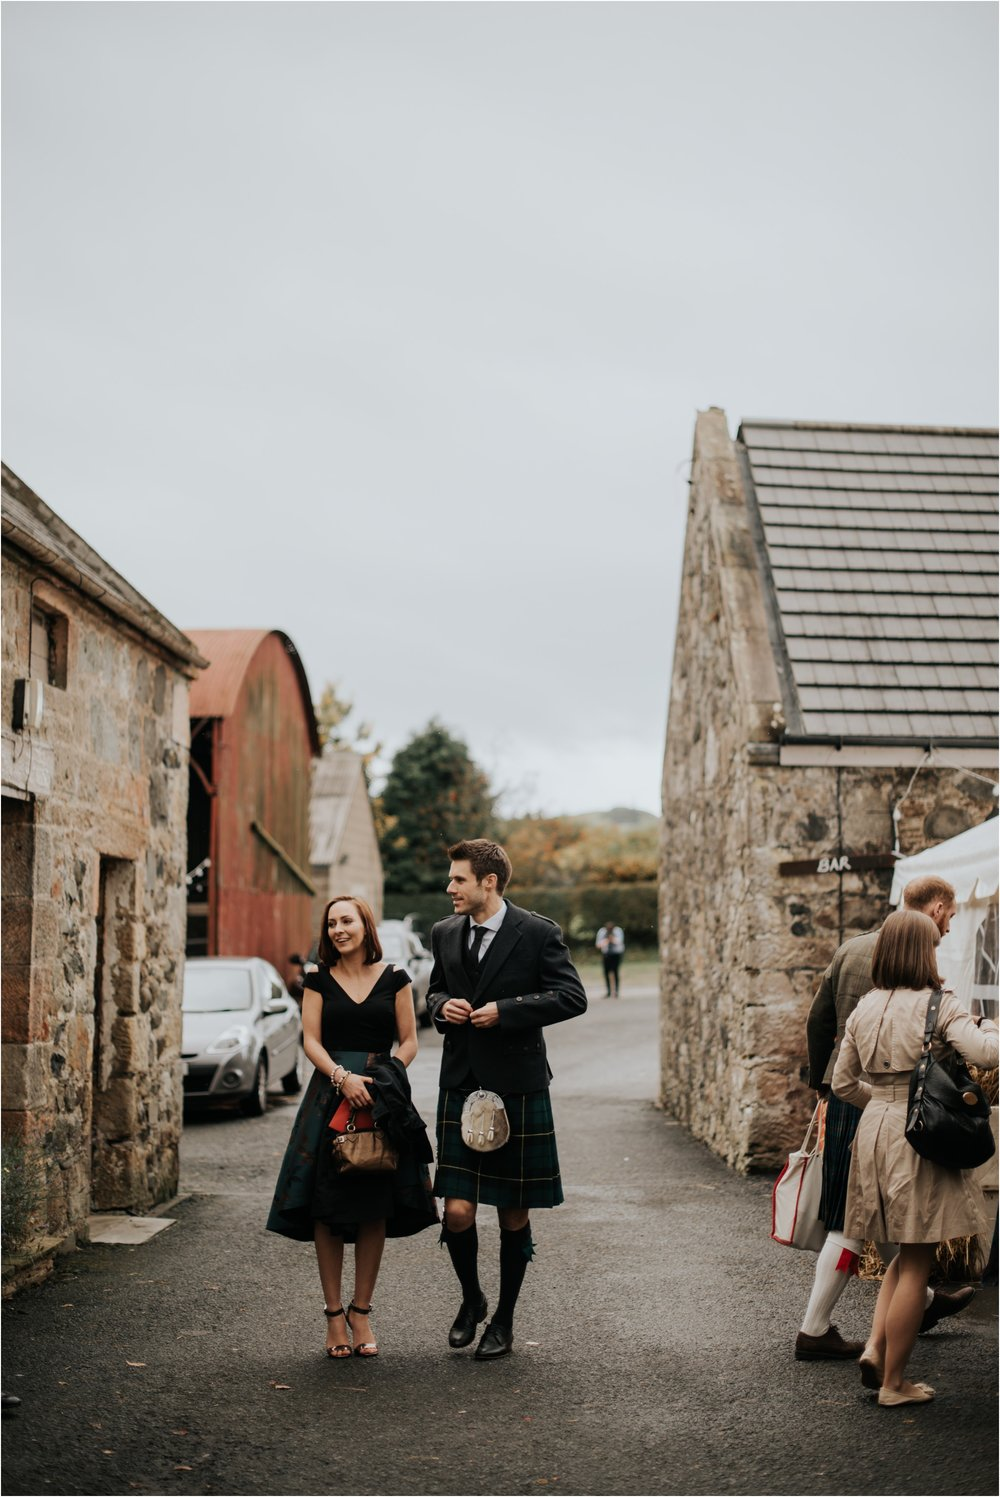 Photography 78 - Glasgow Wedding Photographer - Pete & Eilidh - Dalduff Farm_0013.jpg